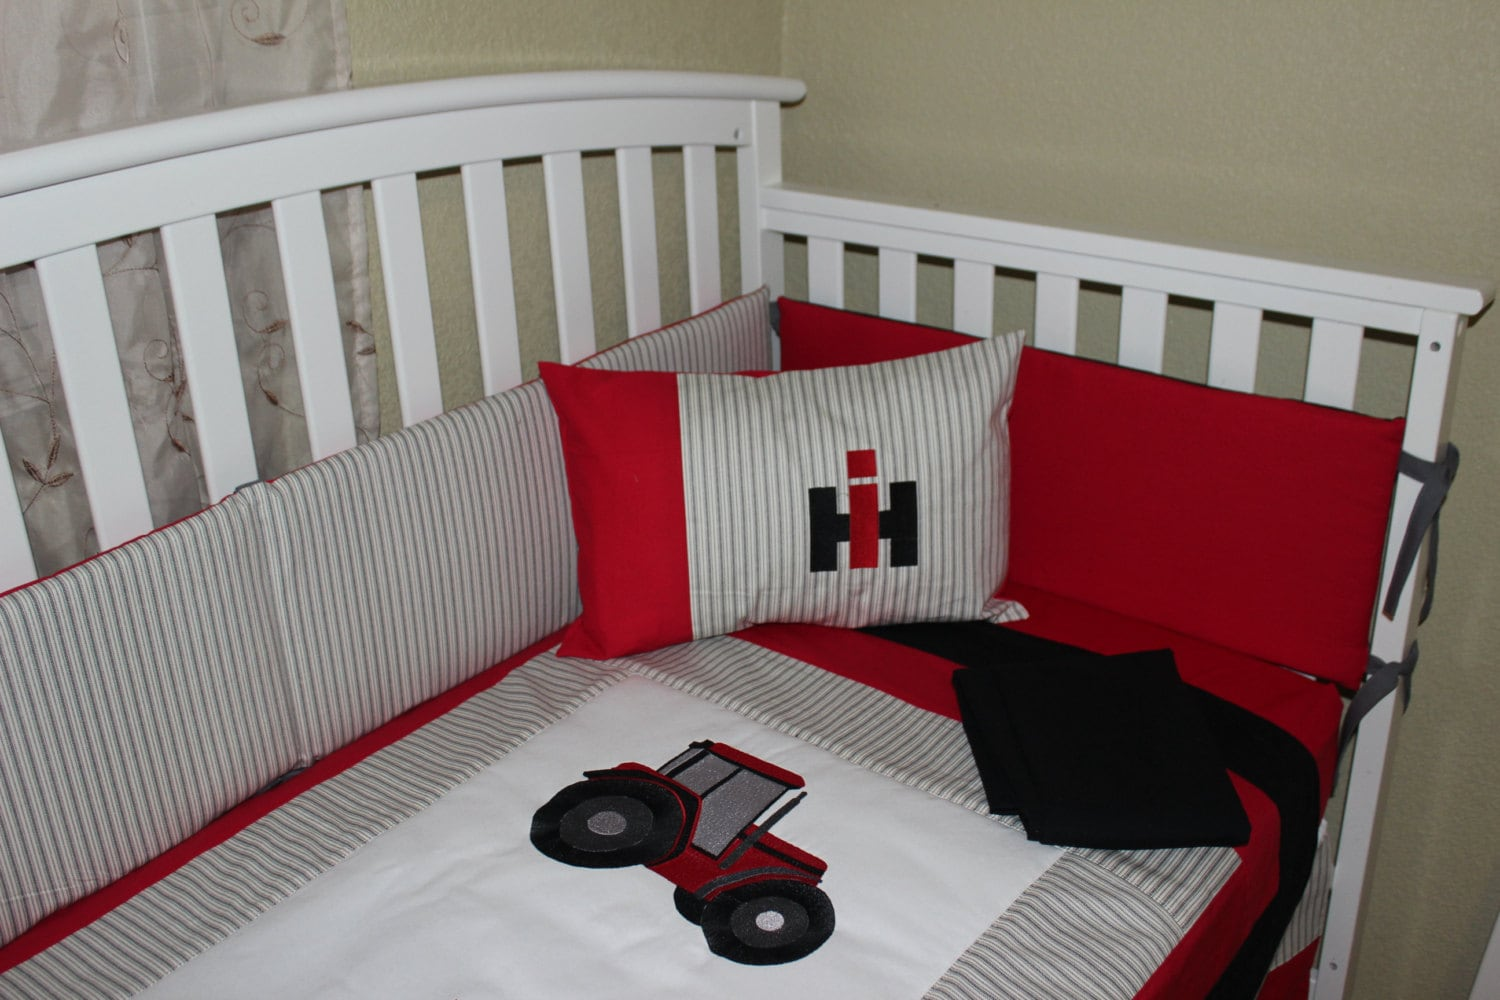 Farmall Tractor Bed Set : Crib bedding set international harvester piece case